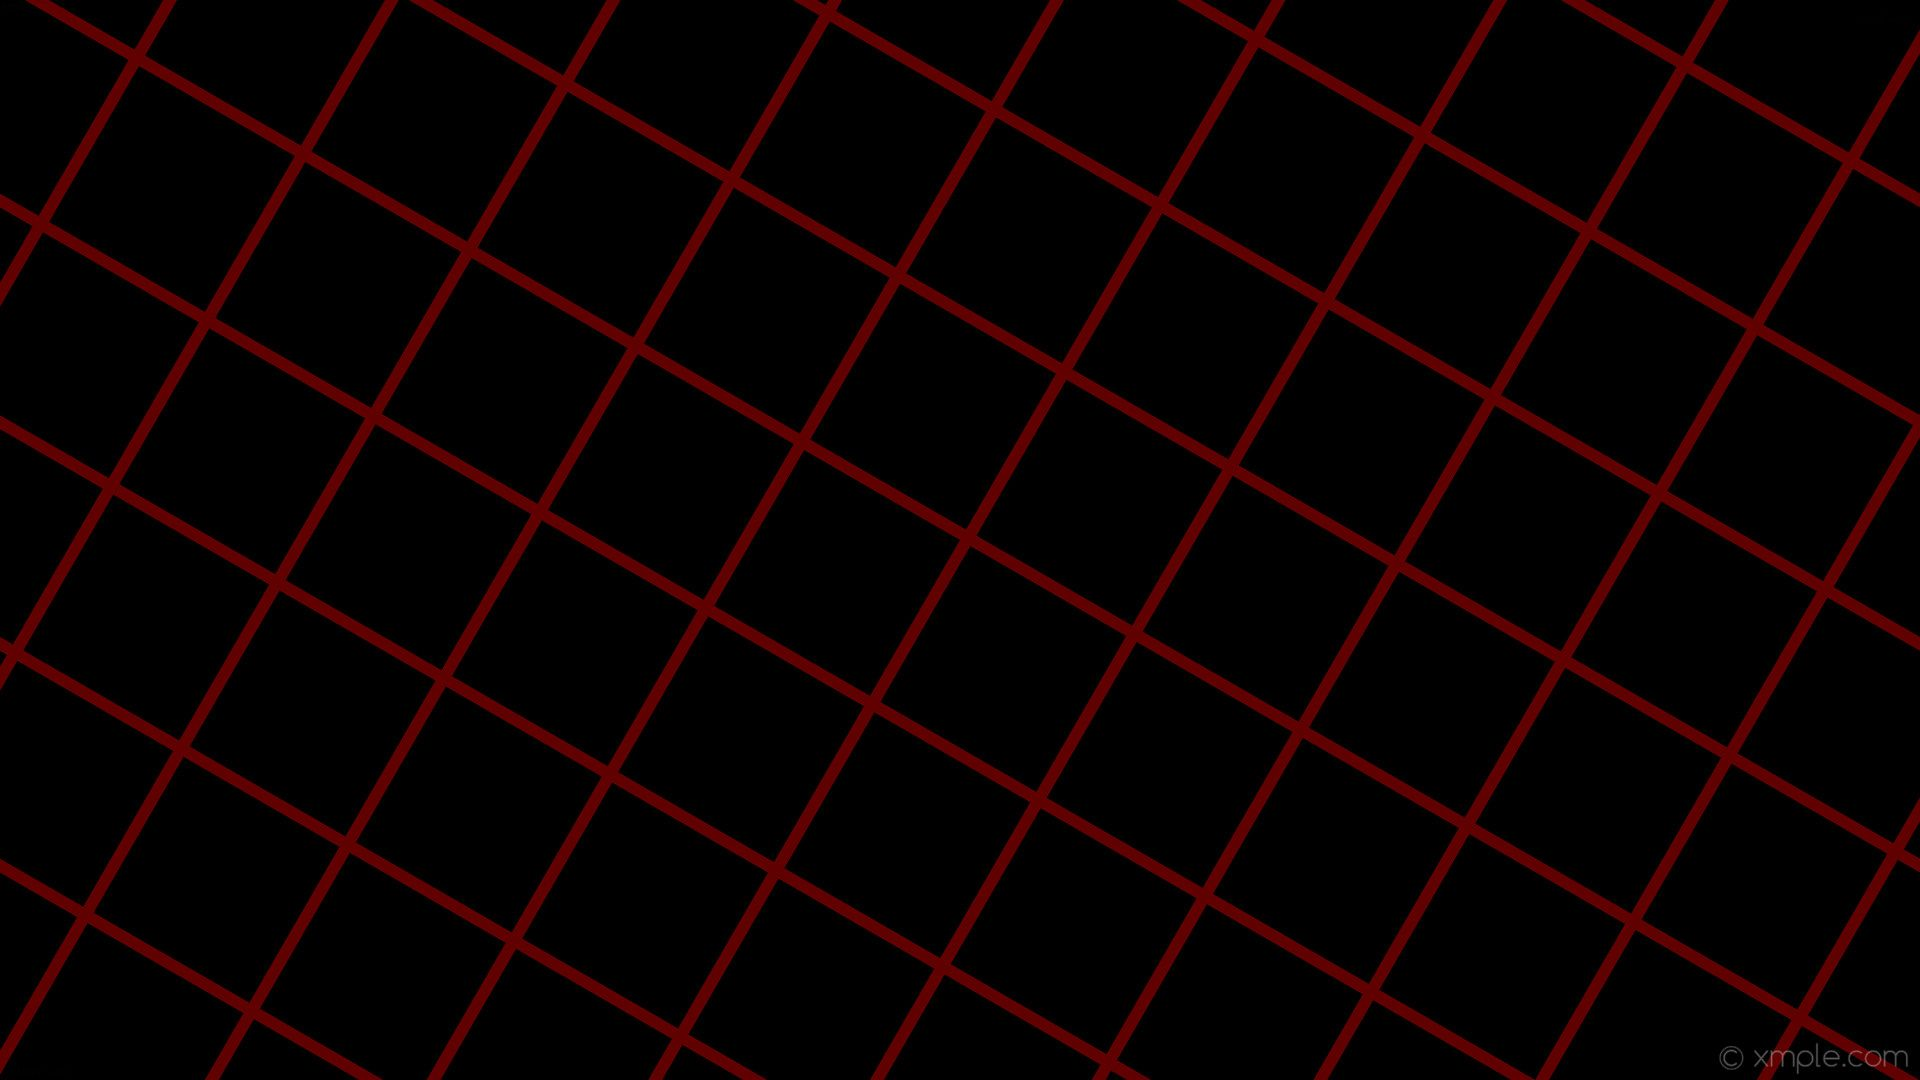 Red And Black Aesthetic Wallpapers On Wallpaperdog